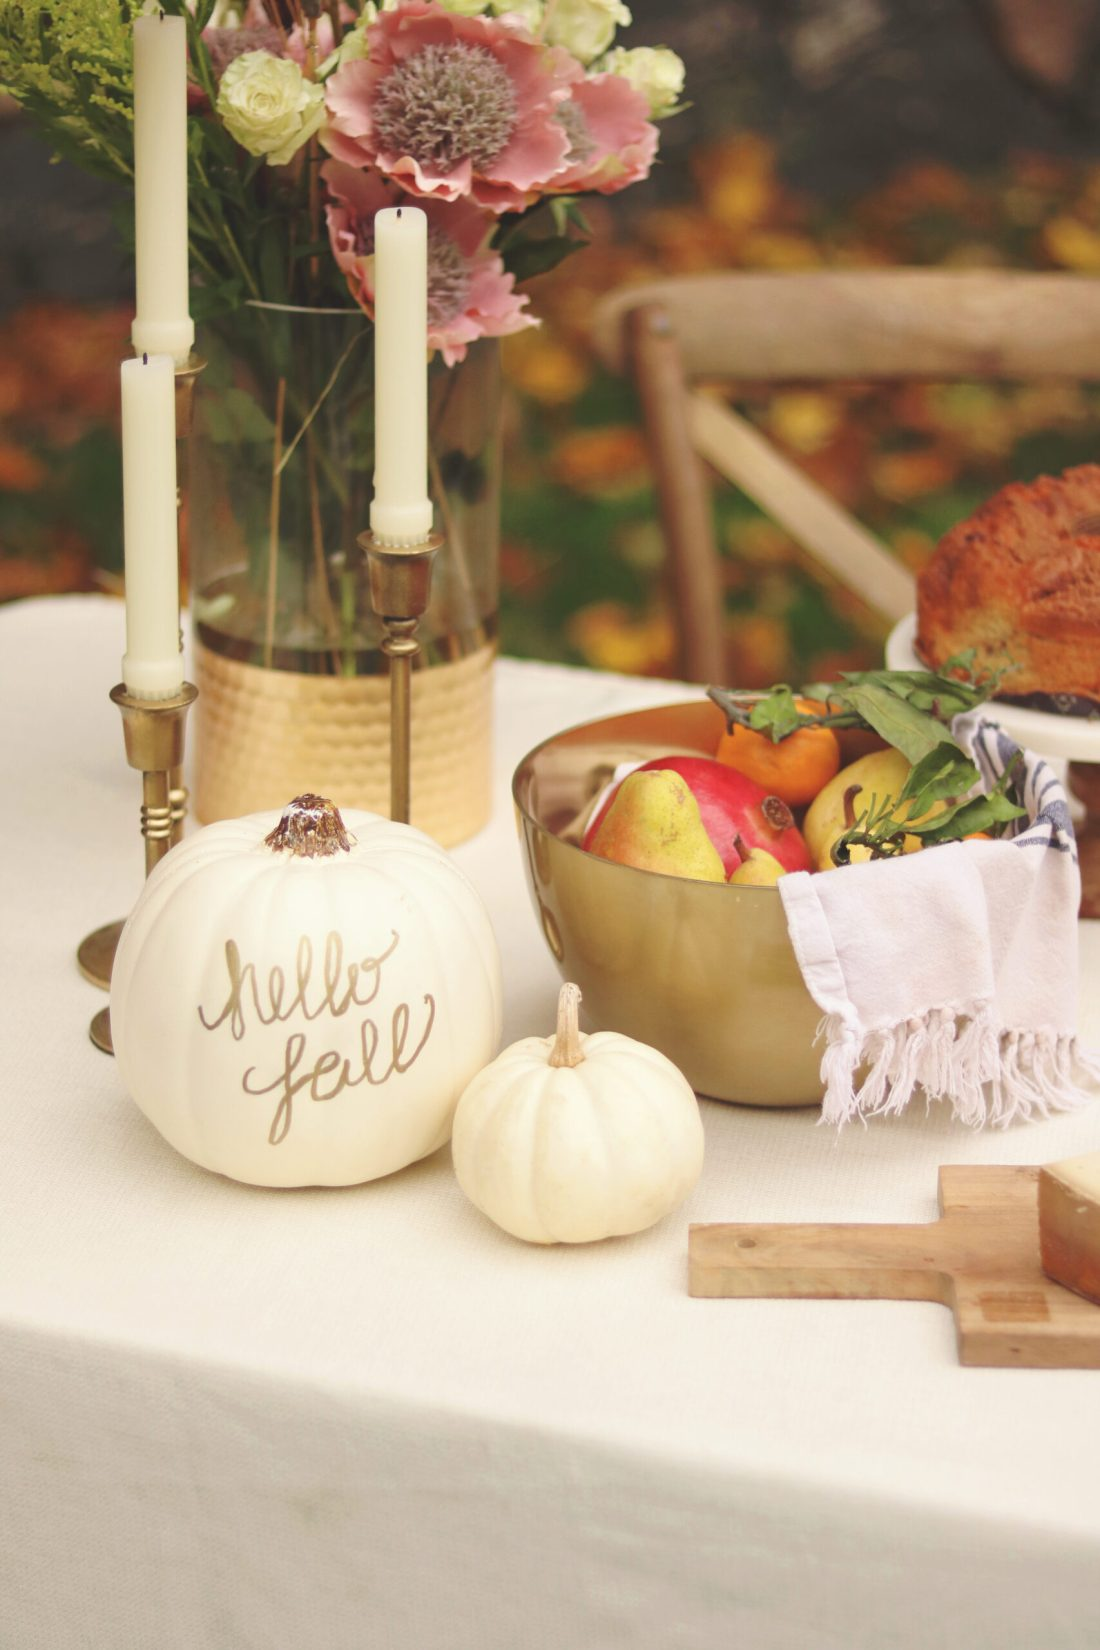 Decorating your Thanksgiving Table with crafting pumpkins plus an easy DIY Over-The-Table Floral Rod to Make Your Thanksgiving Table a Feast to Remember and to use for all your festive holidays.  || Darling Darleen Top Lifestyle CT Blogger #thanksgivingtable #thanksgiving #darlingdarleen